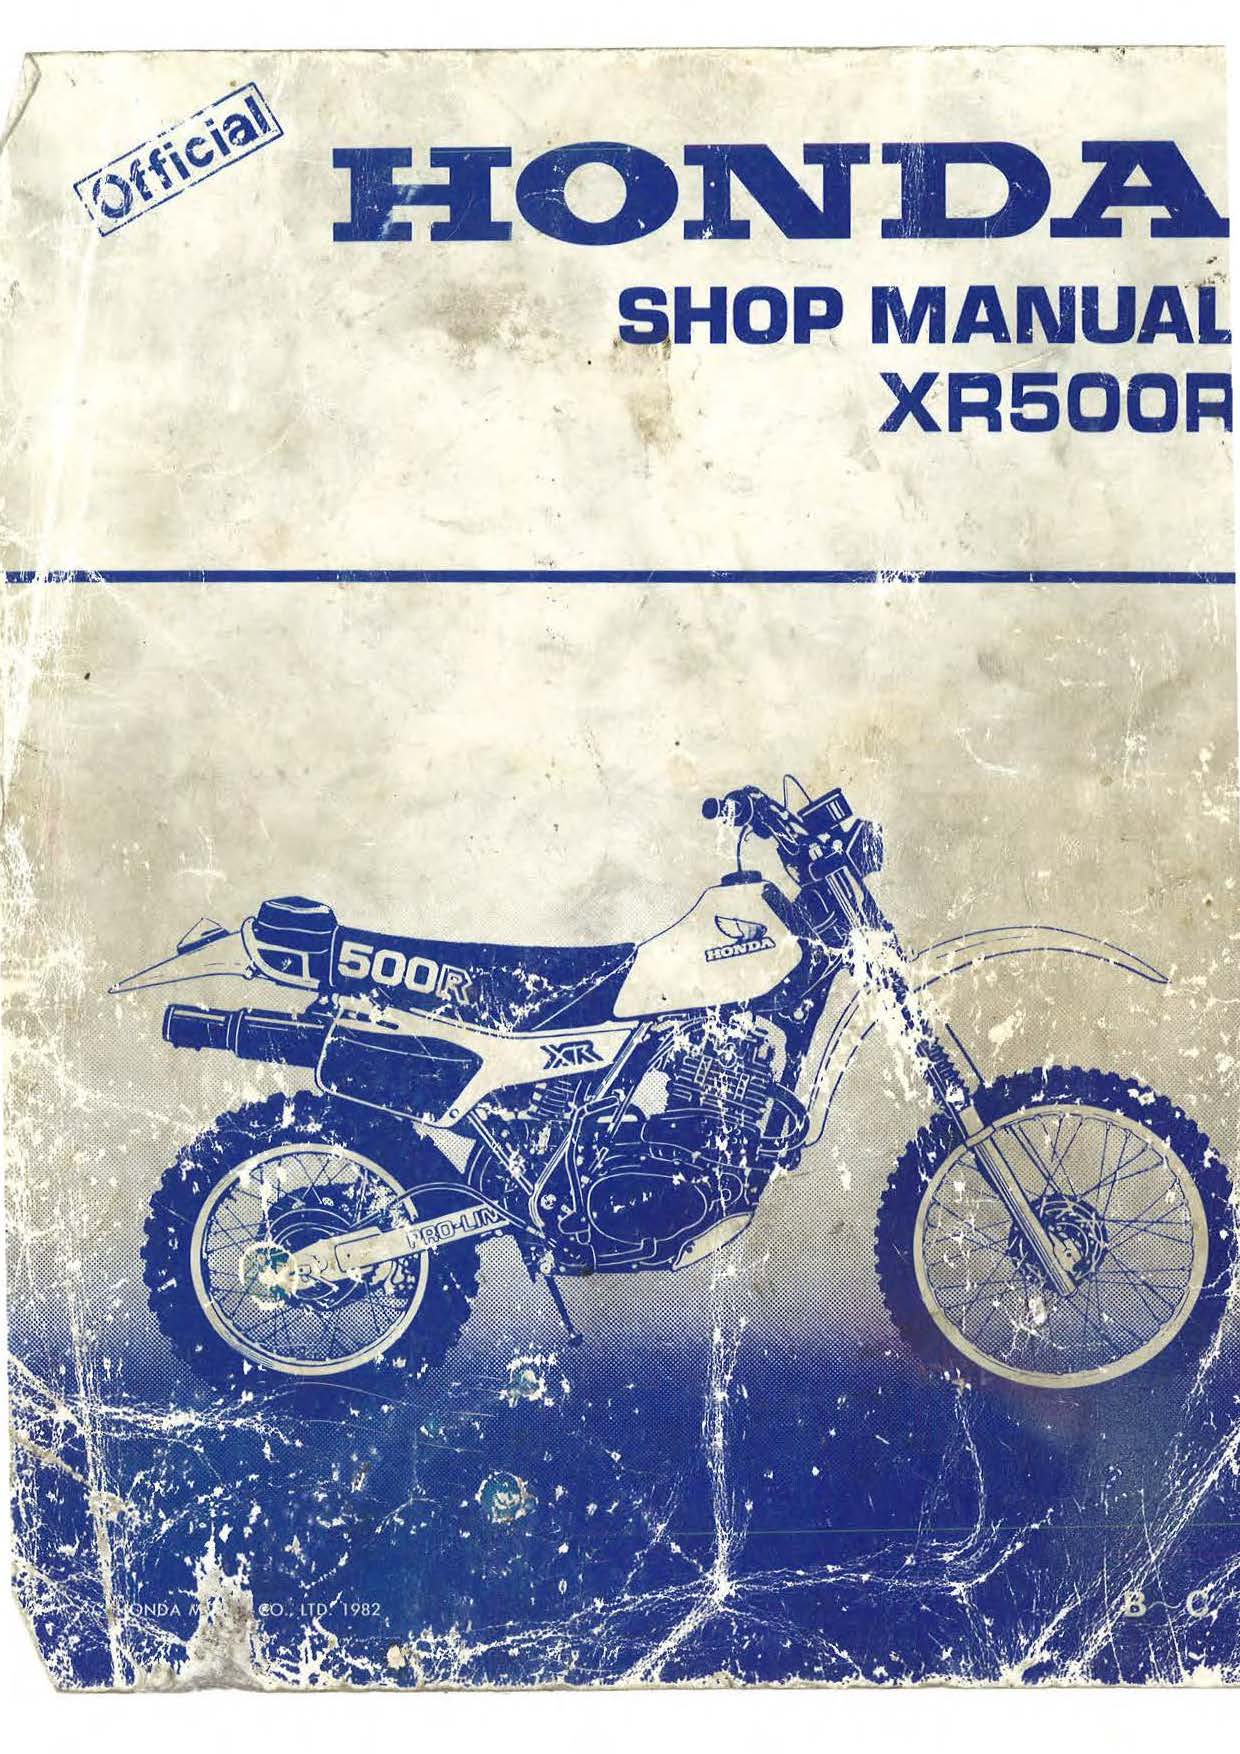 workshopmanual xr500 1982 27042020 2053